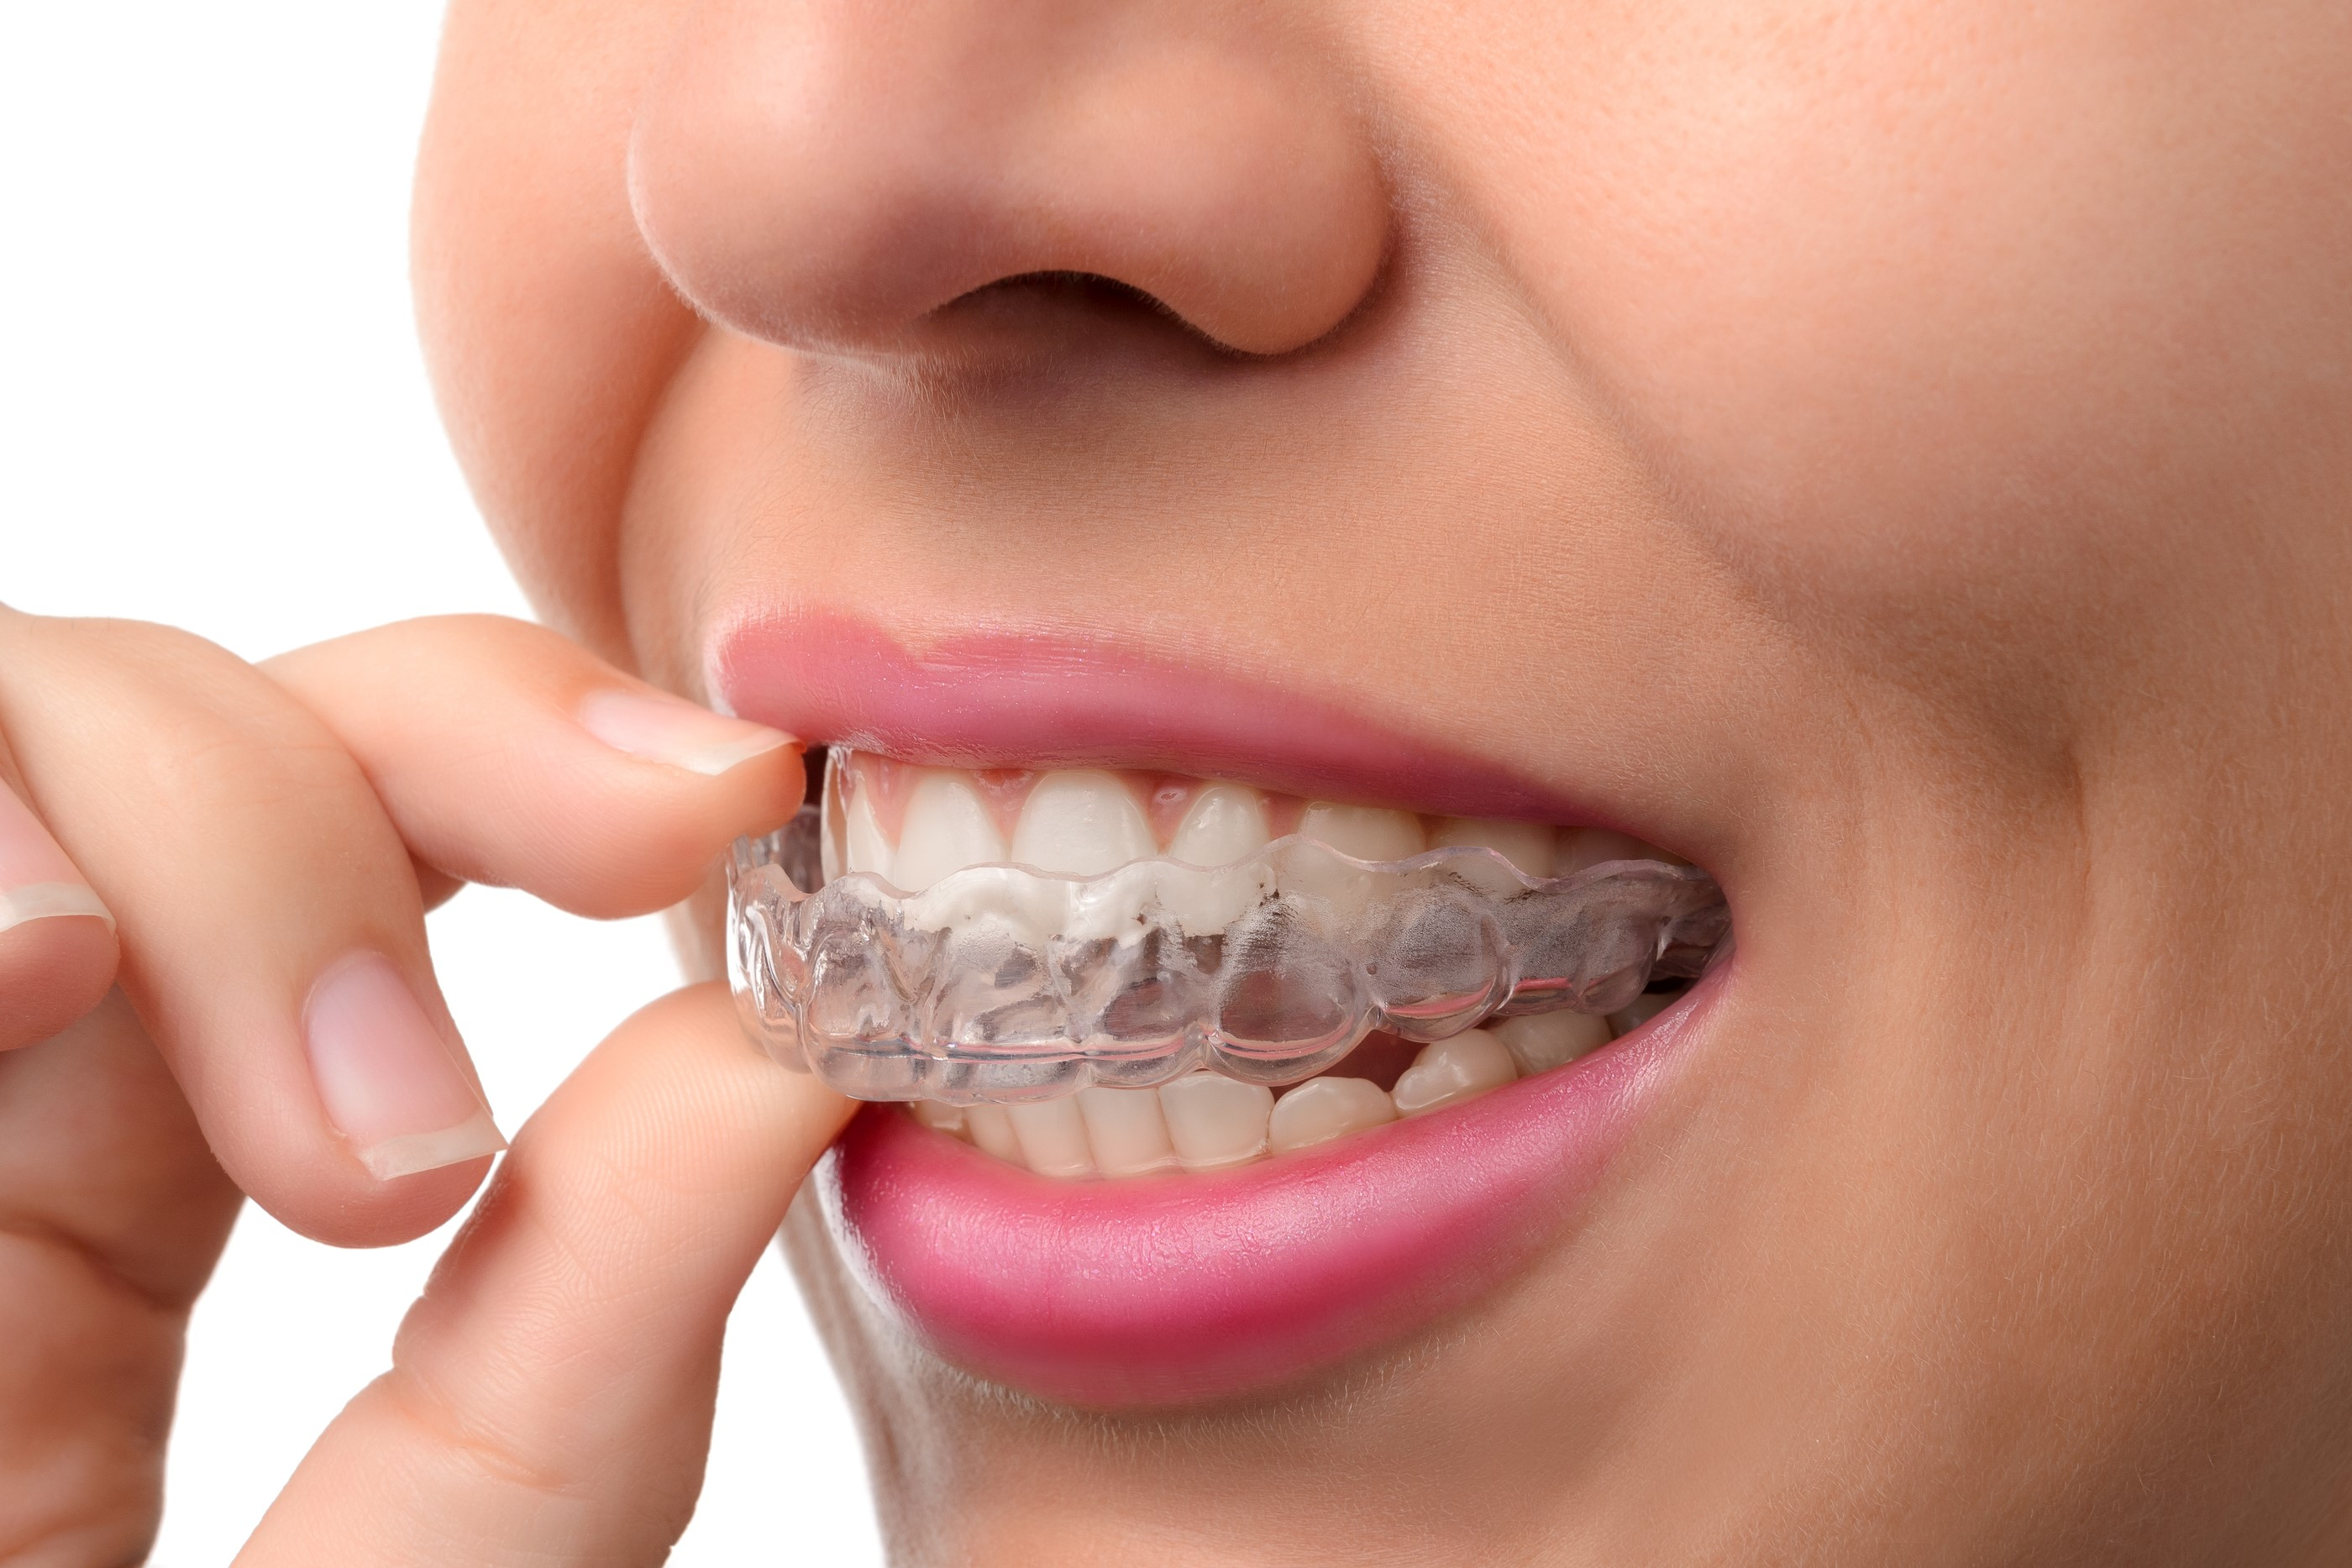 At What Age Should Your Children Get Dental Braces?